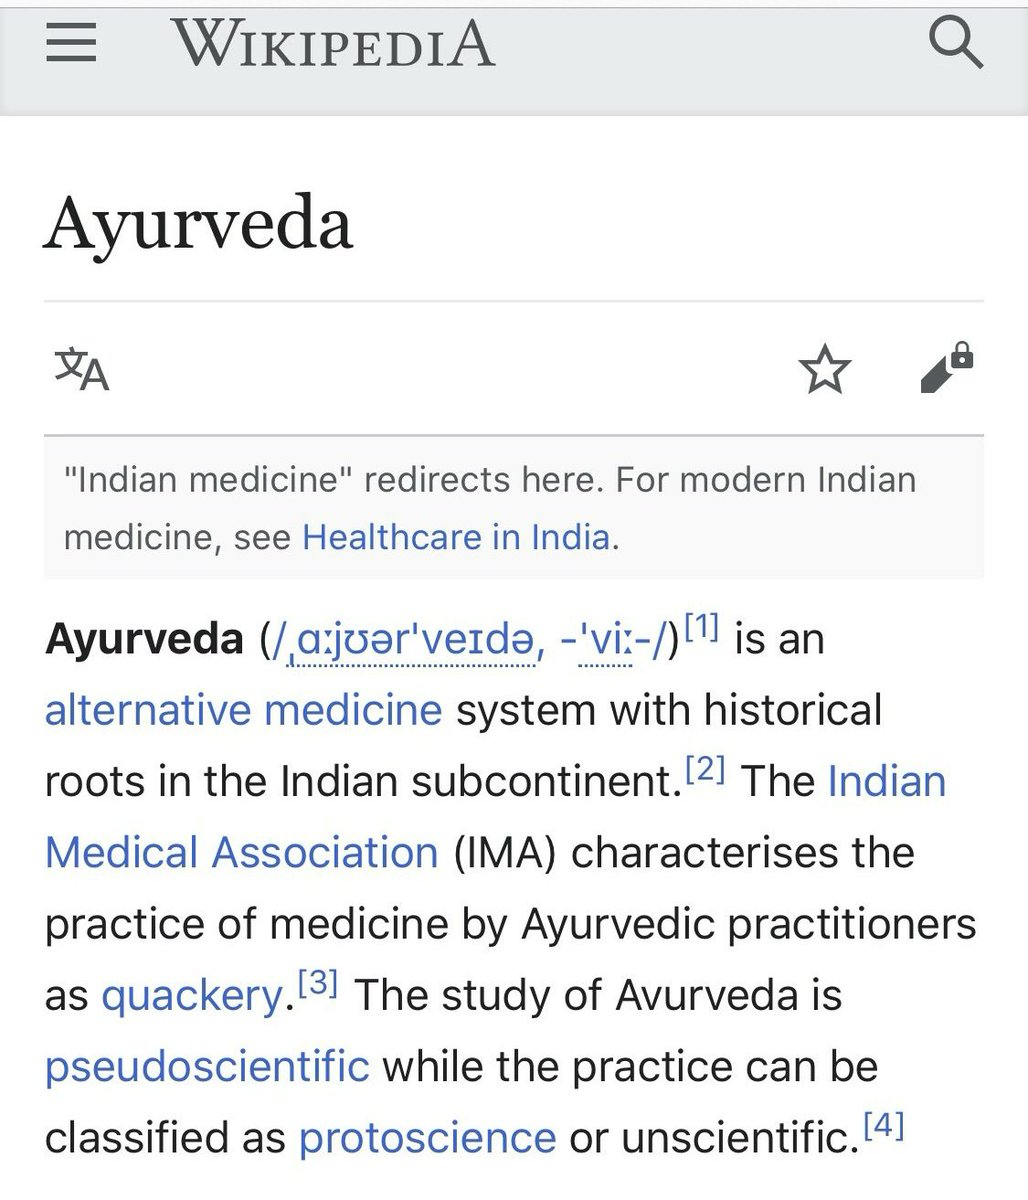 @jimmy_wales So #Ayurveda is Quackery? And you want Indians to donate to #Wikipedia. https://t.co/PfJE9f1vik